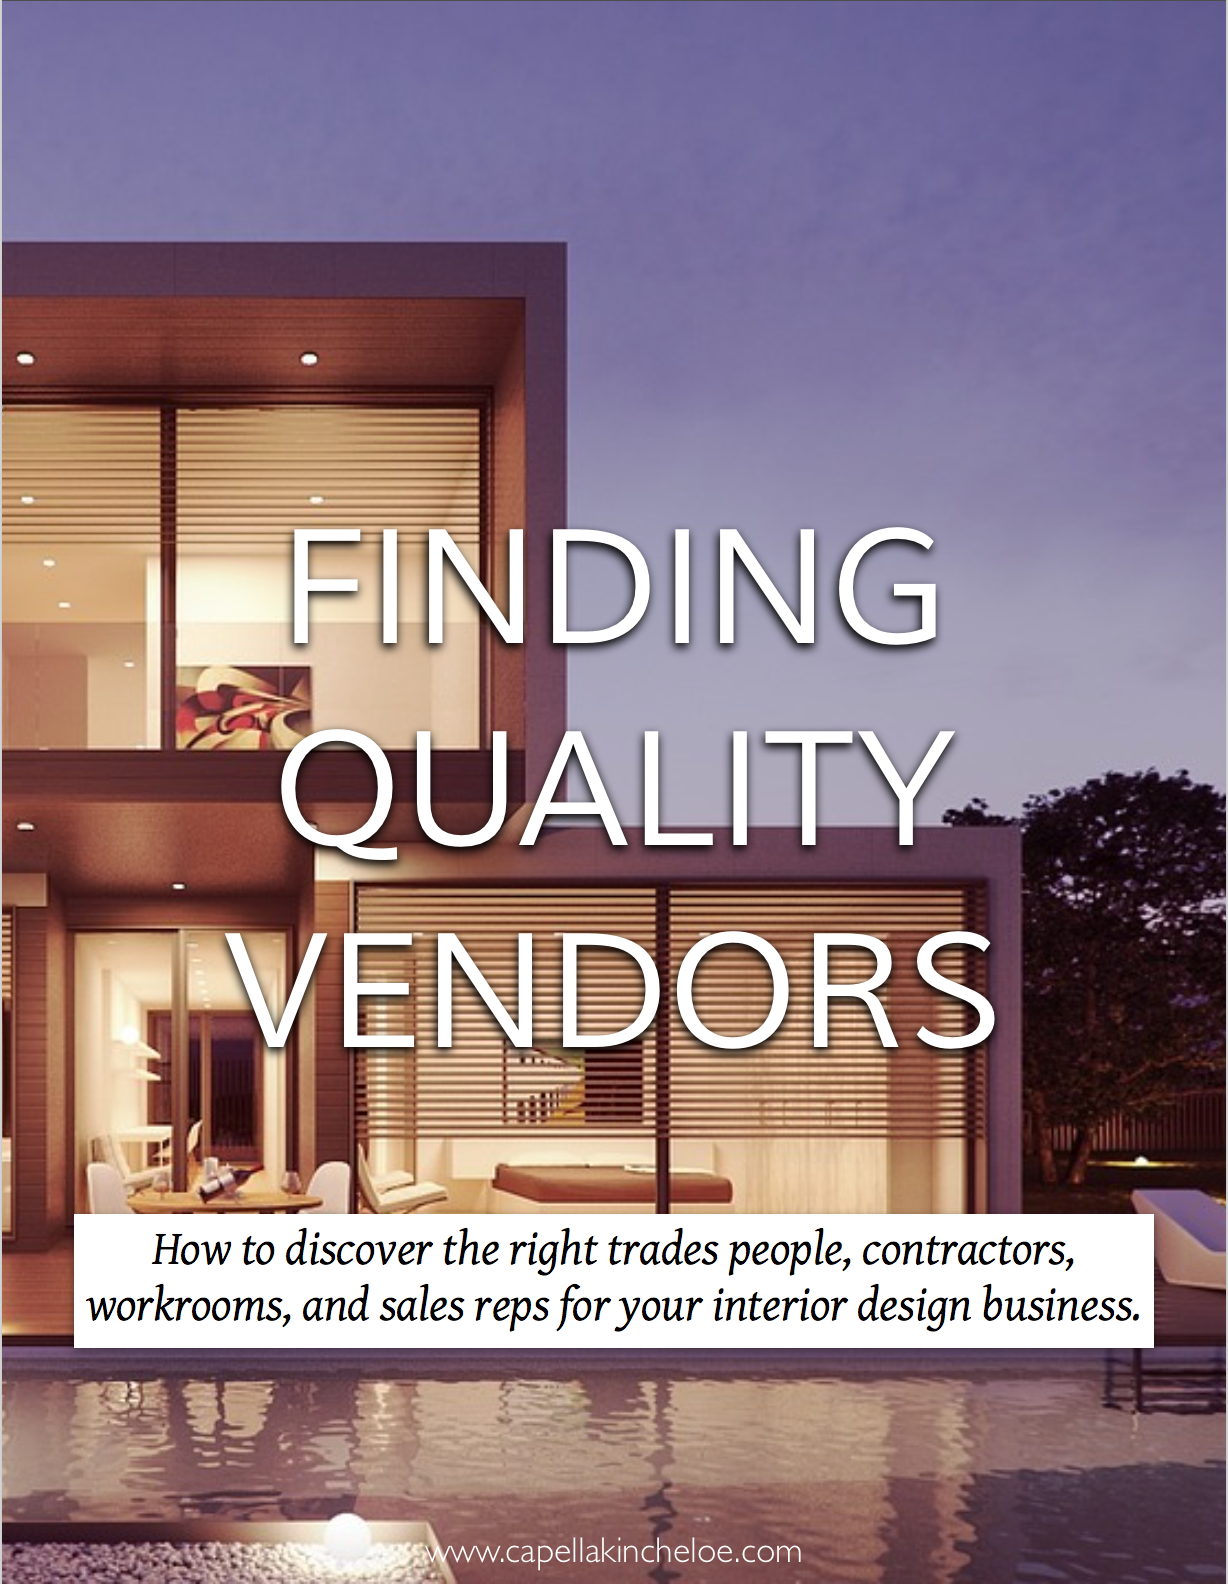 How to discover the right trades people, contractors, workrooms, and sales reps for your interior design business. #interiordesignbusiness #cktradesecrets #howtofindcontractors